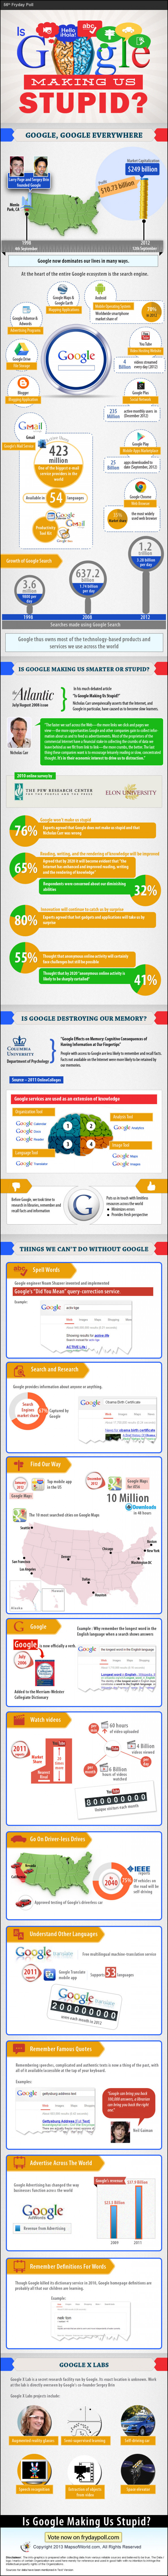 Is Google Making Us Stupid? Infographic